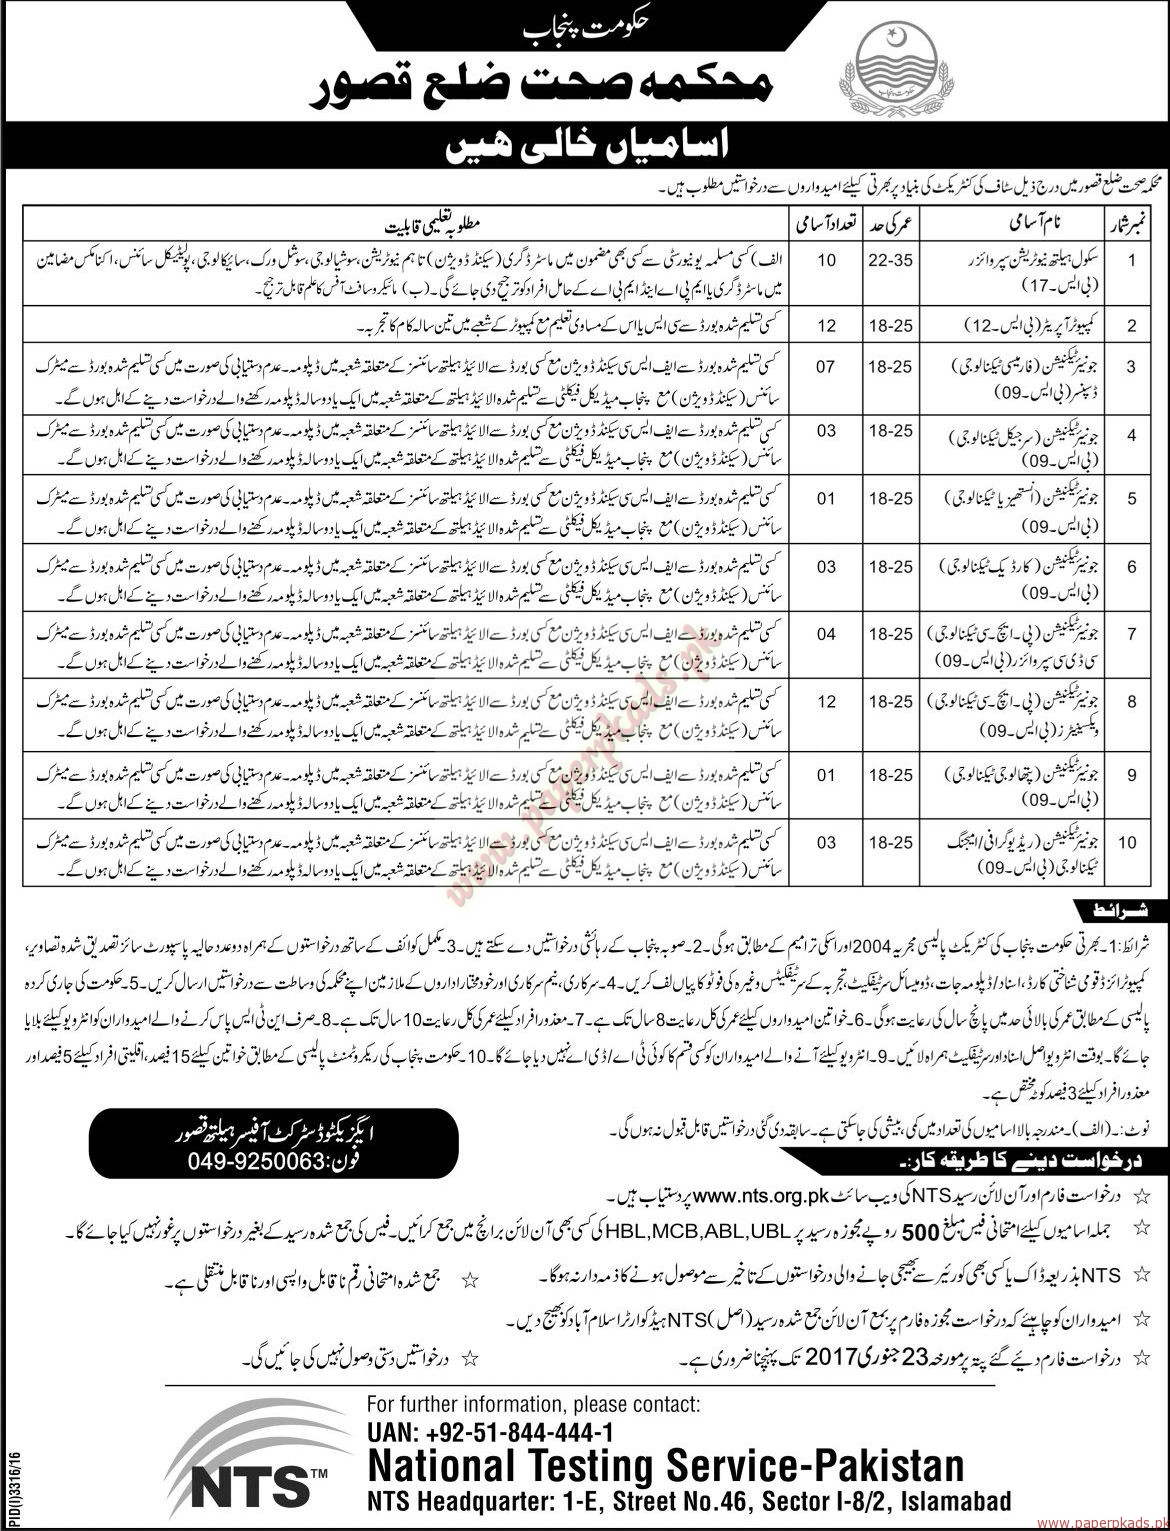 Government of Punjab - Health Department Kussur Jobs - Jang Jobs ads 01 January 2017